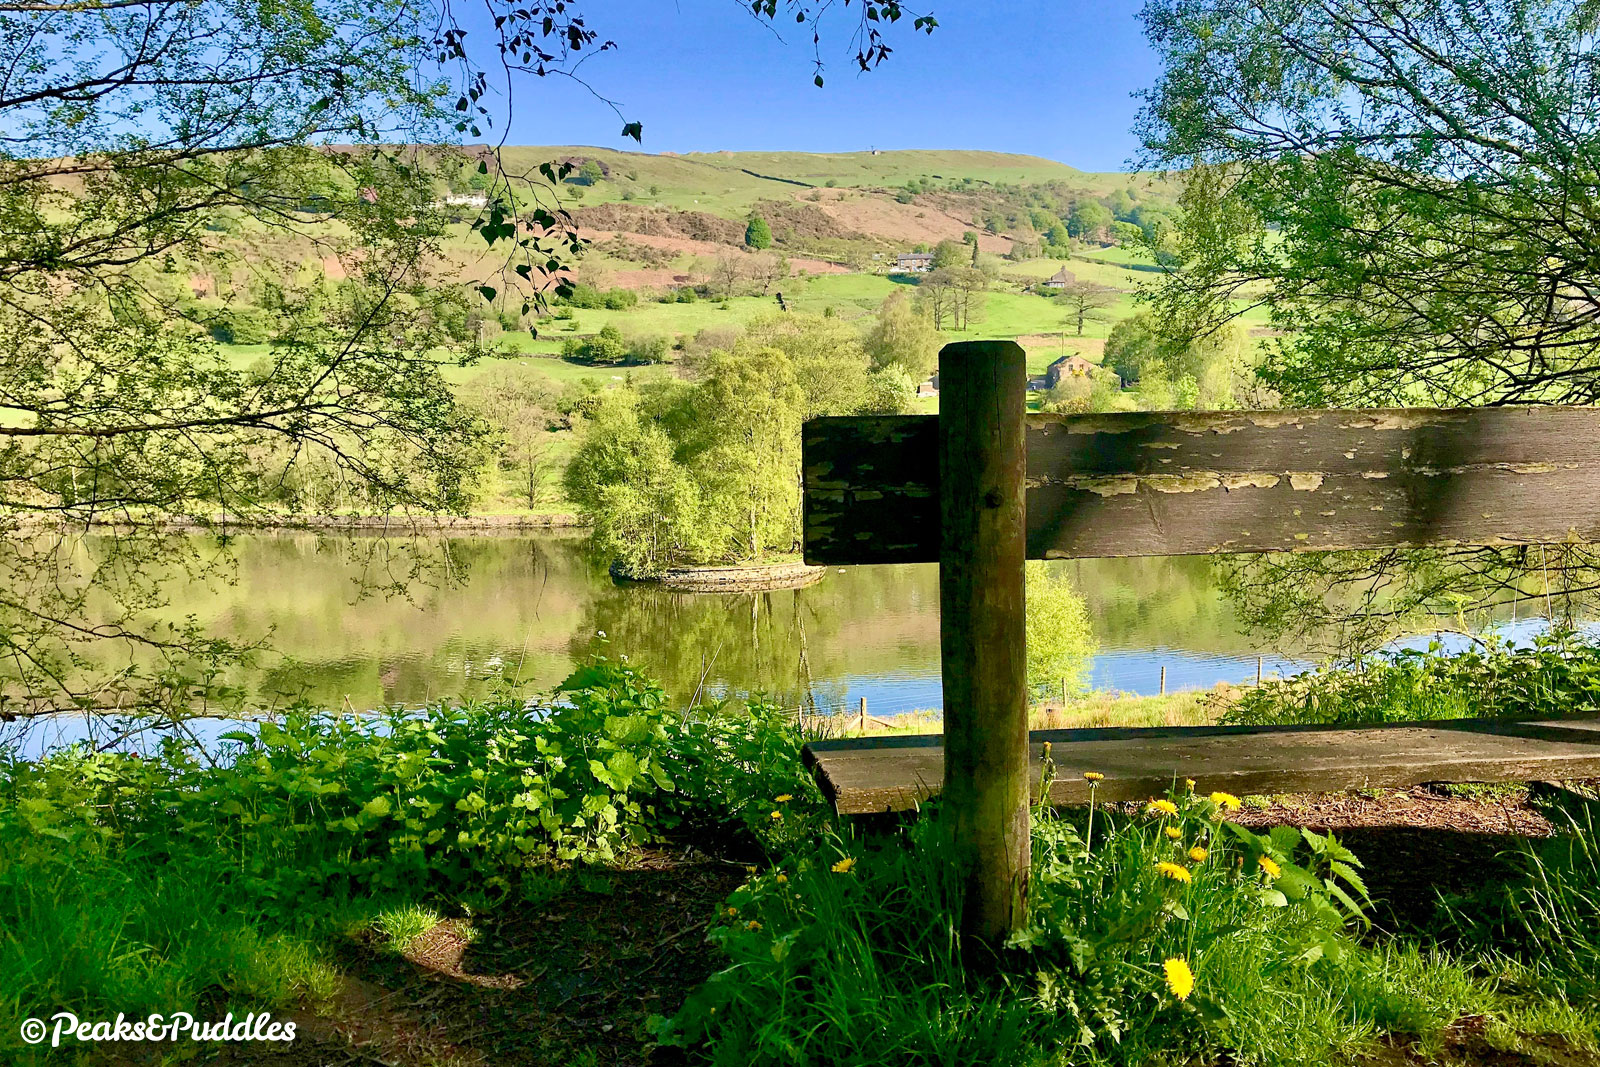 Across the reservoir is Lantern Pike, an evocatively named hill which the Pennine Bridleway runs partly over.